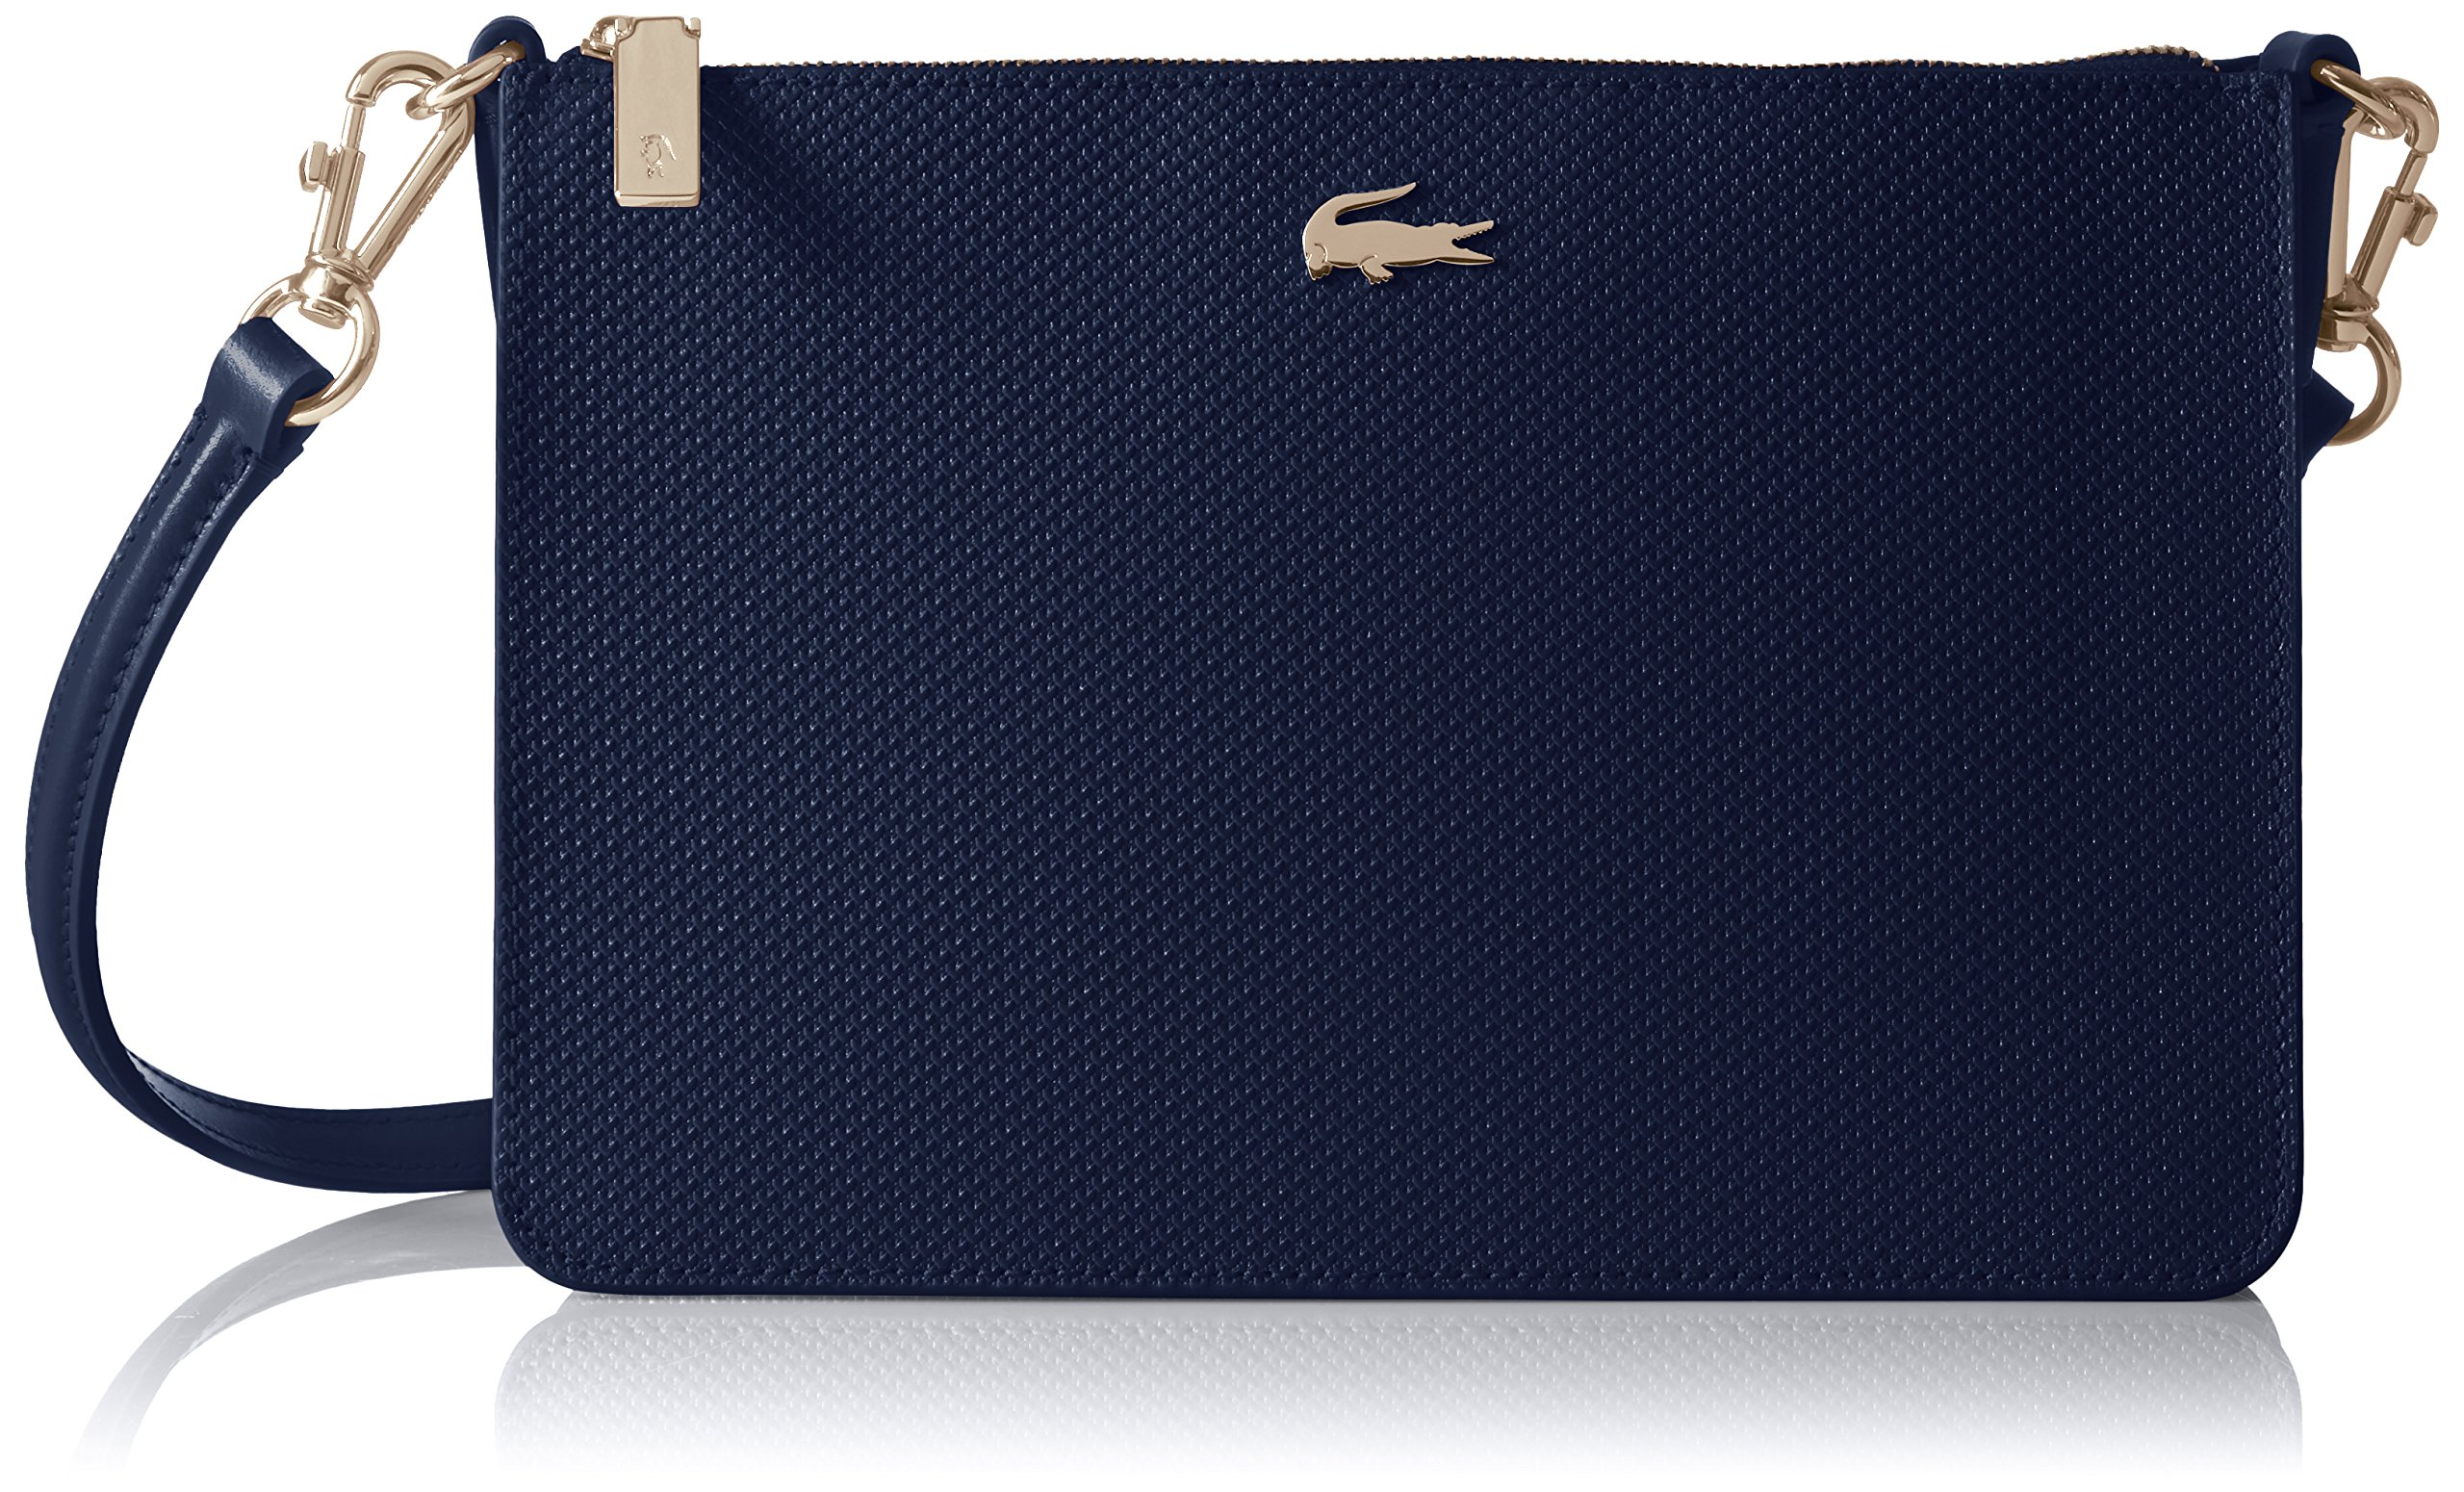 Lacoste Chantaco Double Gussets Crossover, Peacoat